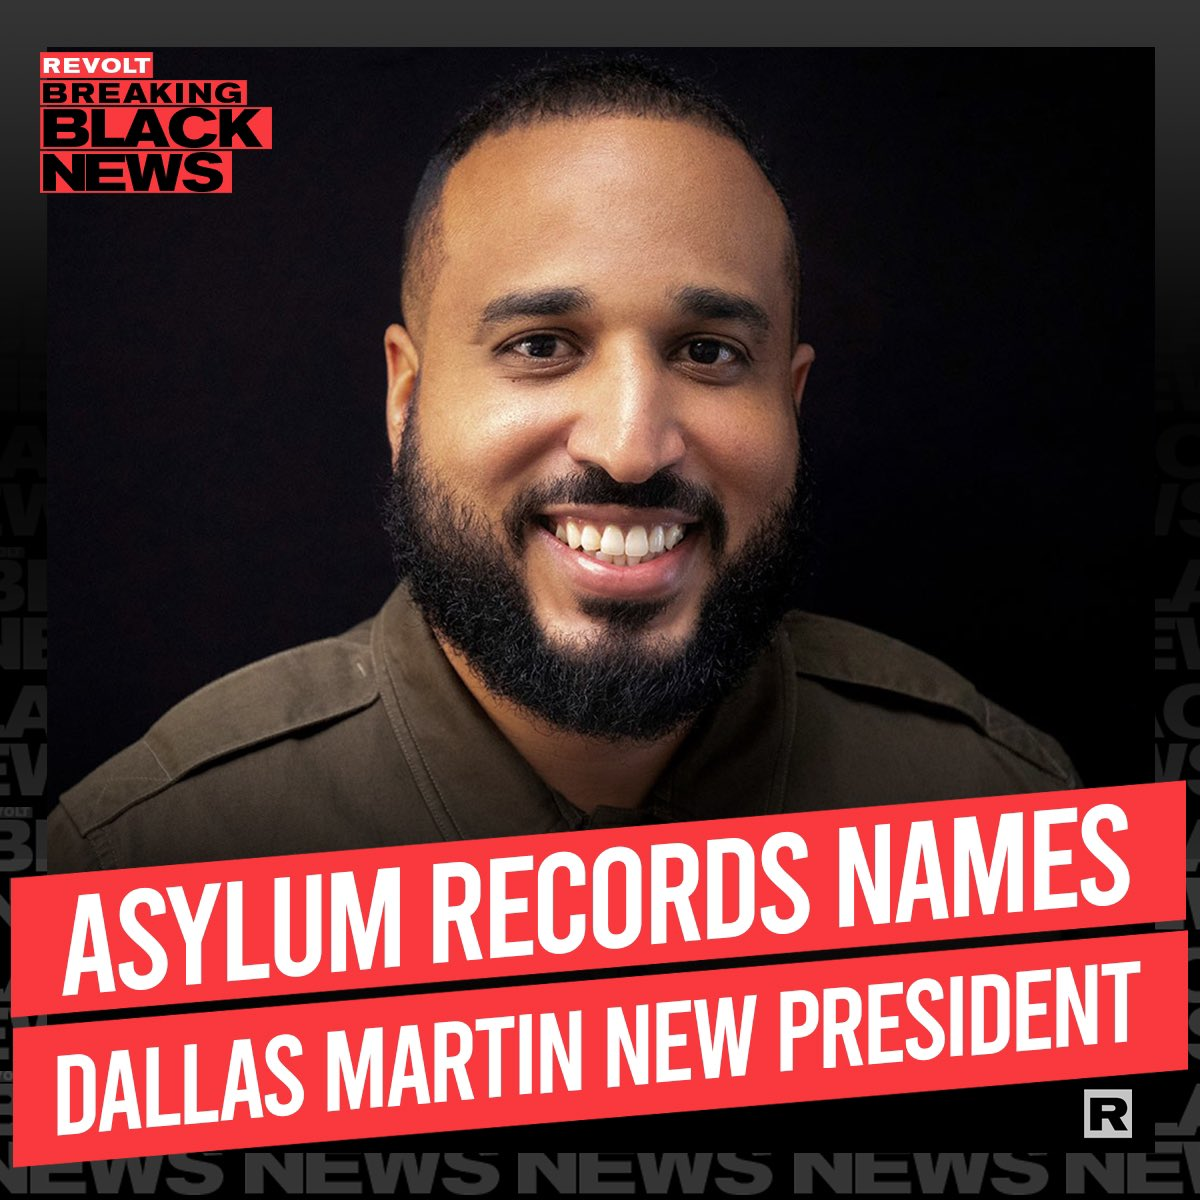 Congratulations to one of rap's most prominent A&Rs of the past decade! Dallas Martin is now president of Asylum Records. #blackexcellence ✊🏿💪🏿👏🏿 @dallaslifestyle